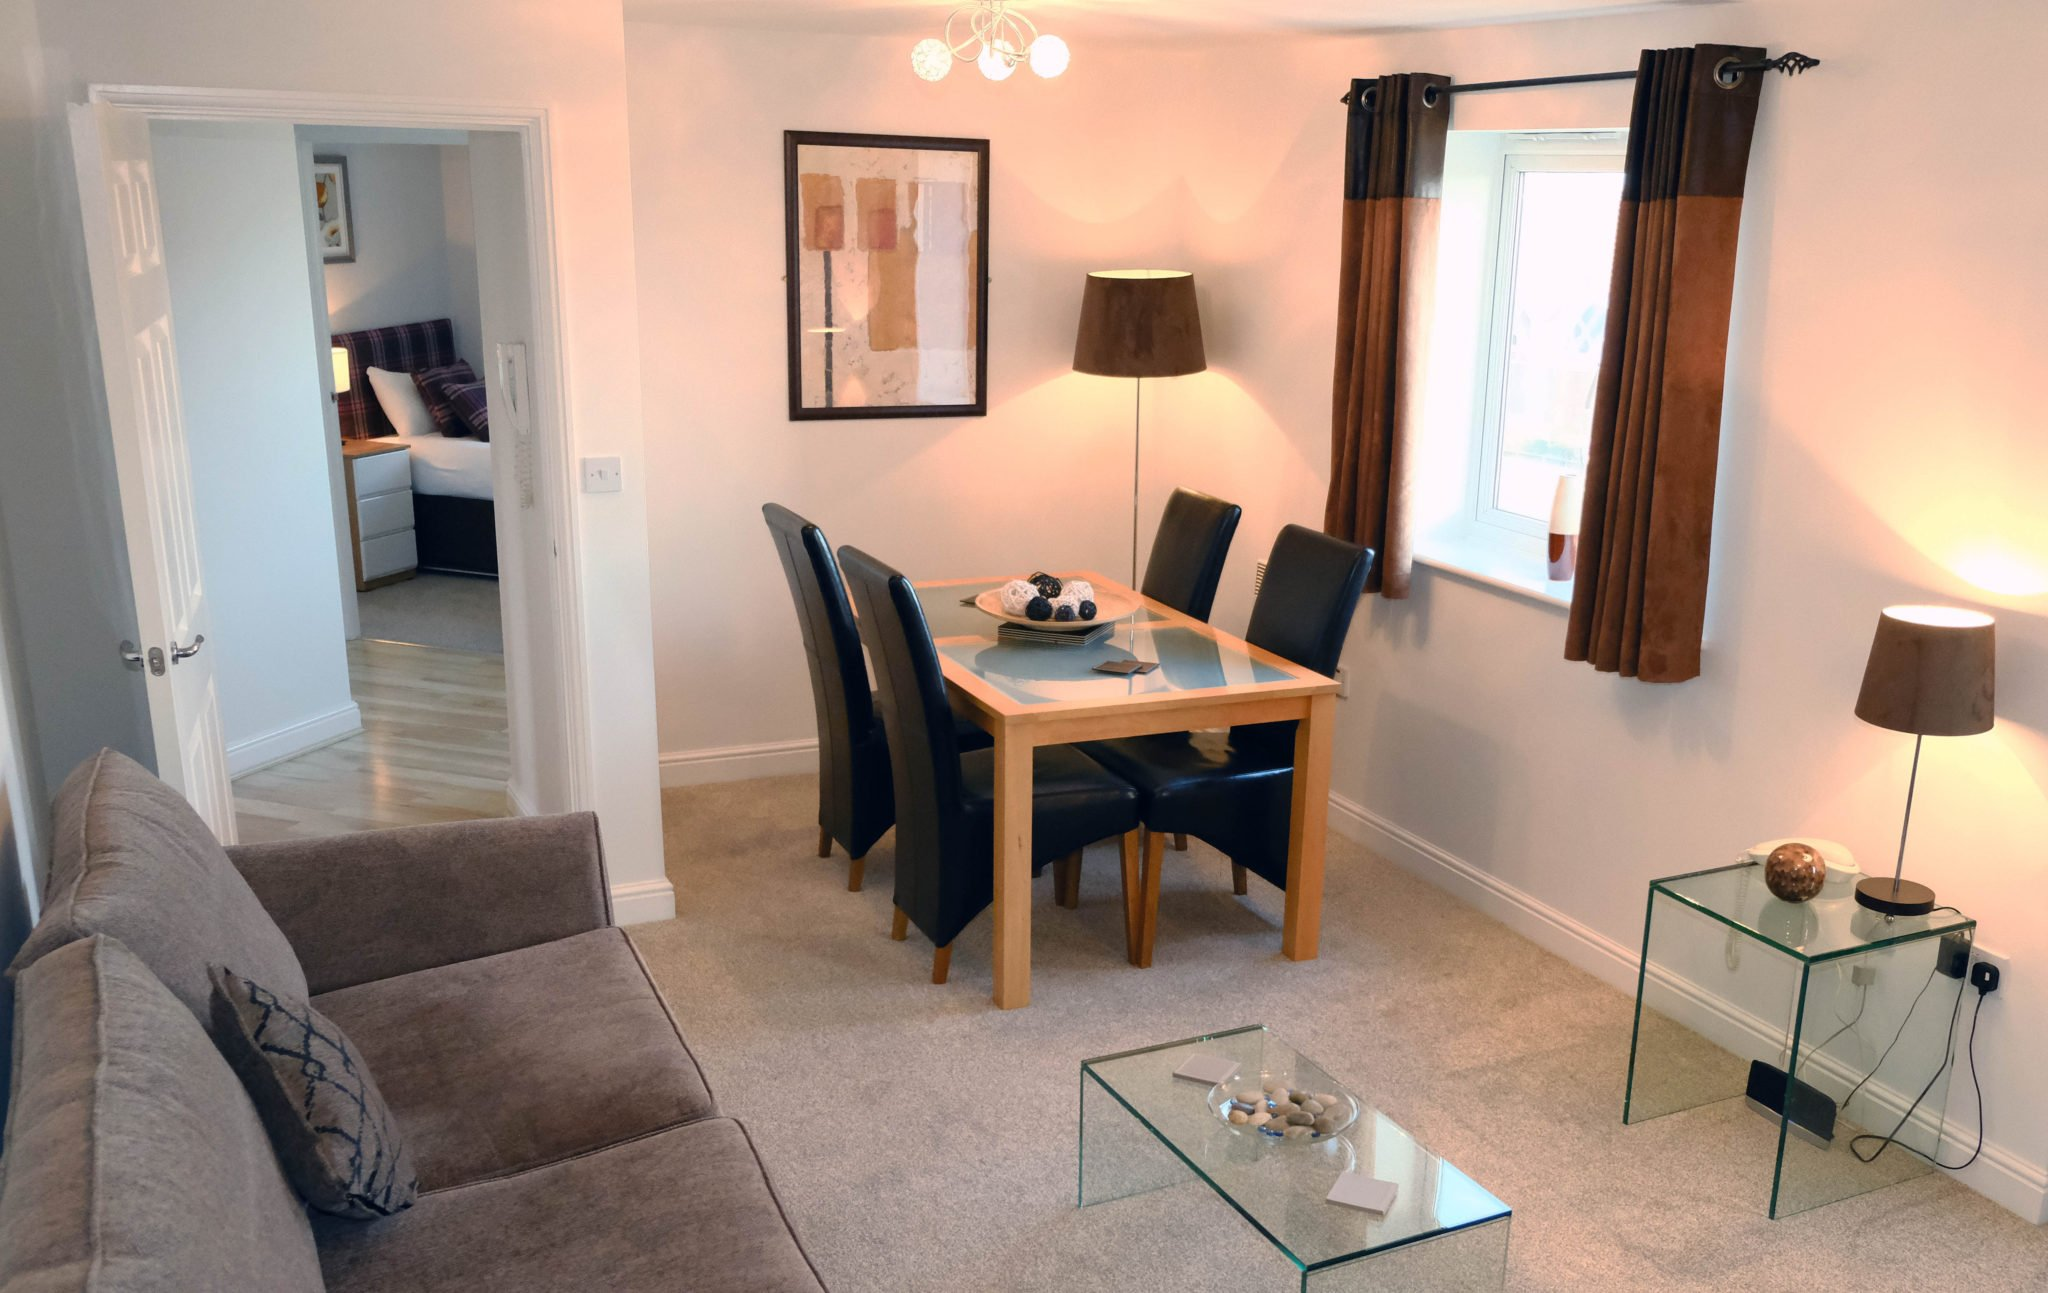 Short Let Accommodation Newcastle UK available Now! Book Serviced Apartments in North England today at cheaper than a Hotel! Parking, Wifi, All bills incl! Urban Stay